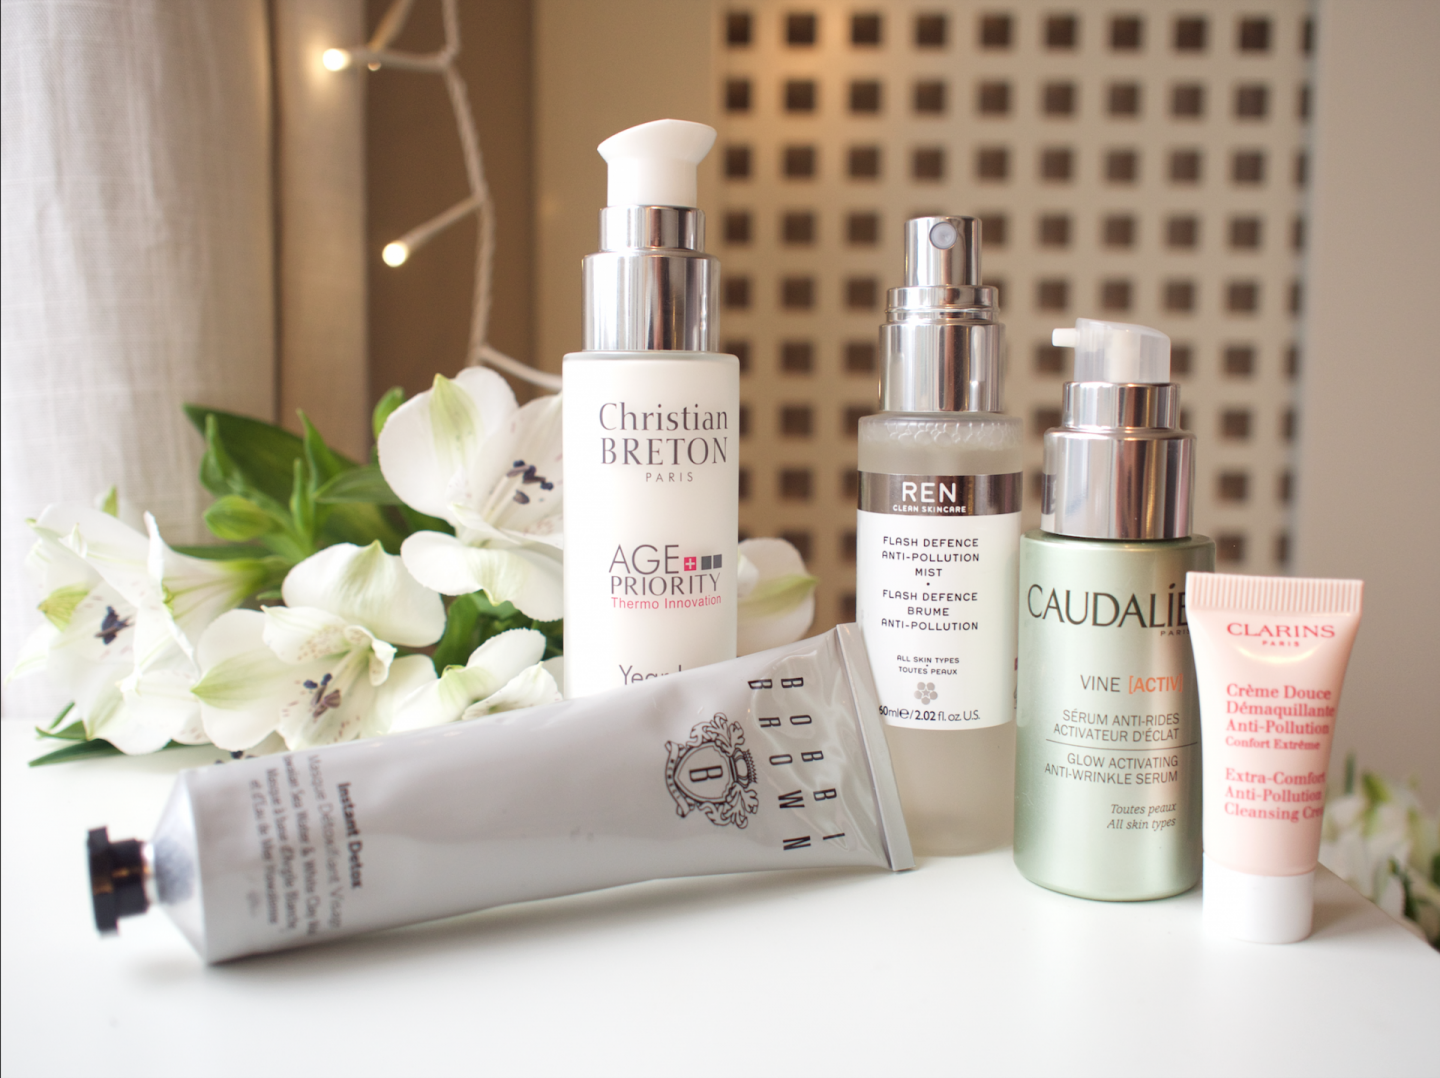 FIGHT POLLUTION WITH THESE BEAUTY PRODUCTS